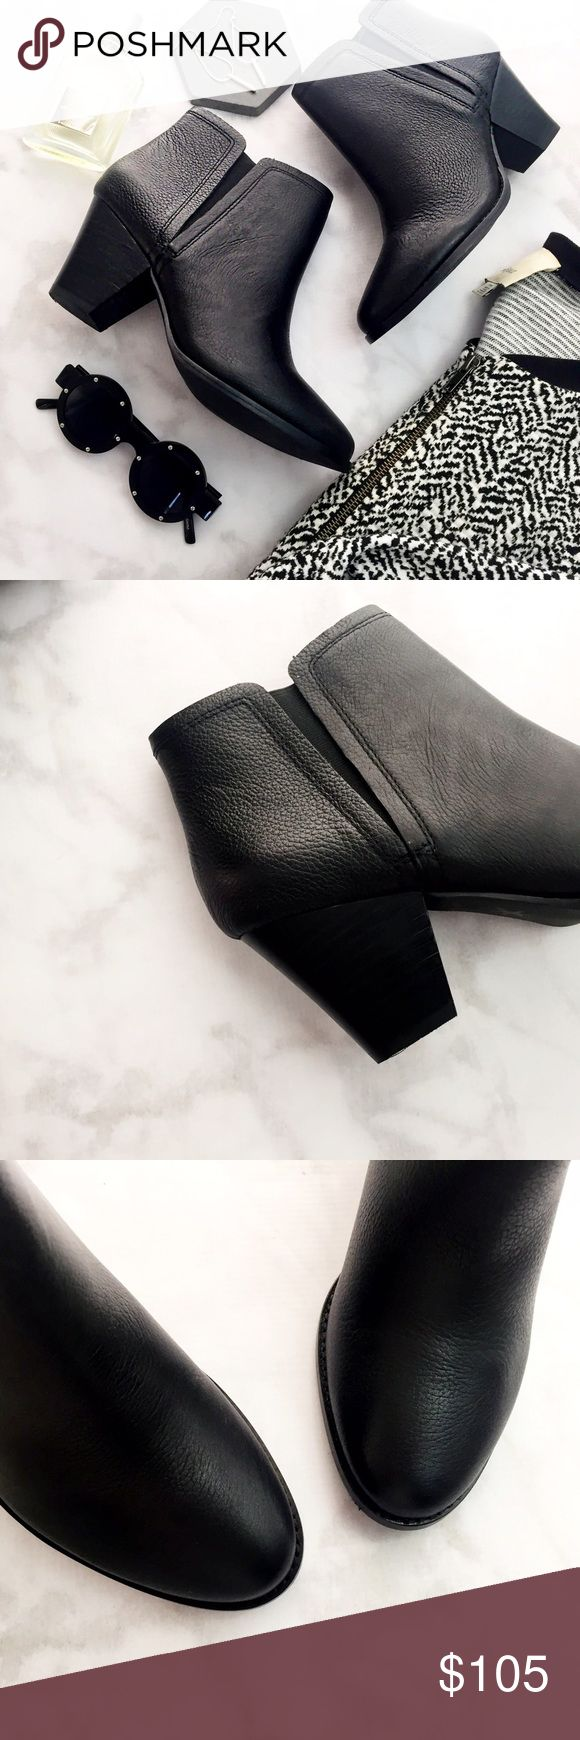 """Black Leather Ankle Boots Details: * Size 8.5 * Black pebbled leather * Pull-on style with elastic goring * 3"""" heel * Brand new in box 11231603 Splendid Shoes Ankle Boots & Booties"""